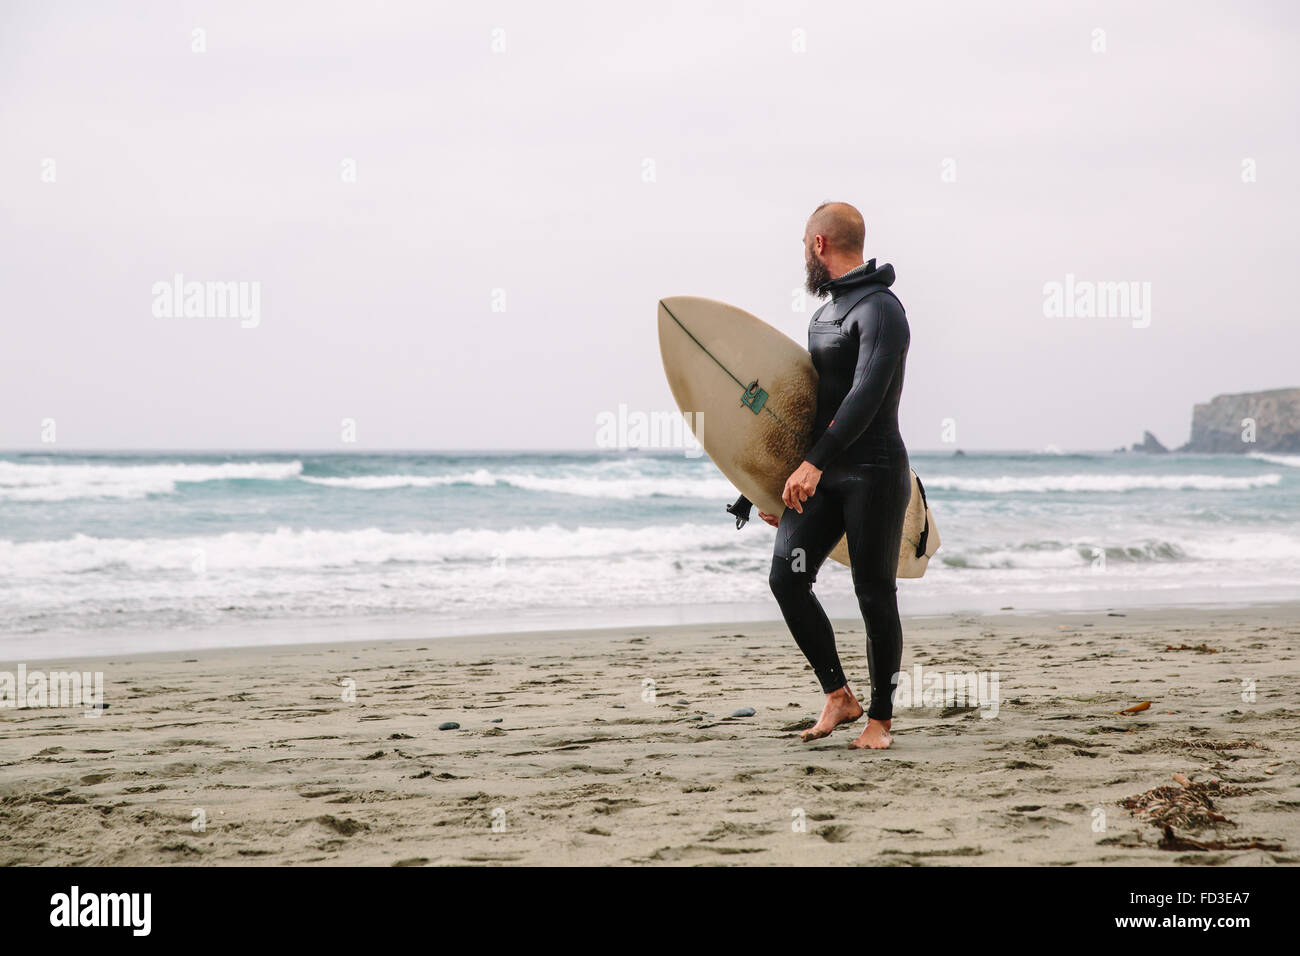 A surfer walks in from the water after a day out on the waves in Big Sur, California. - Stock Image